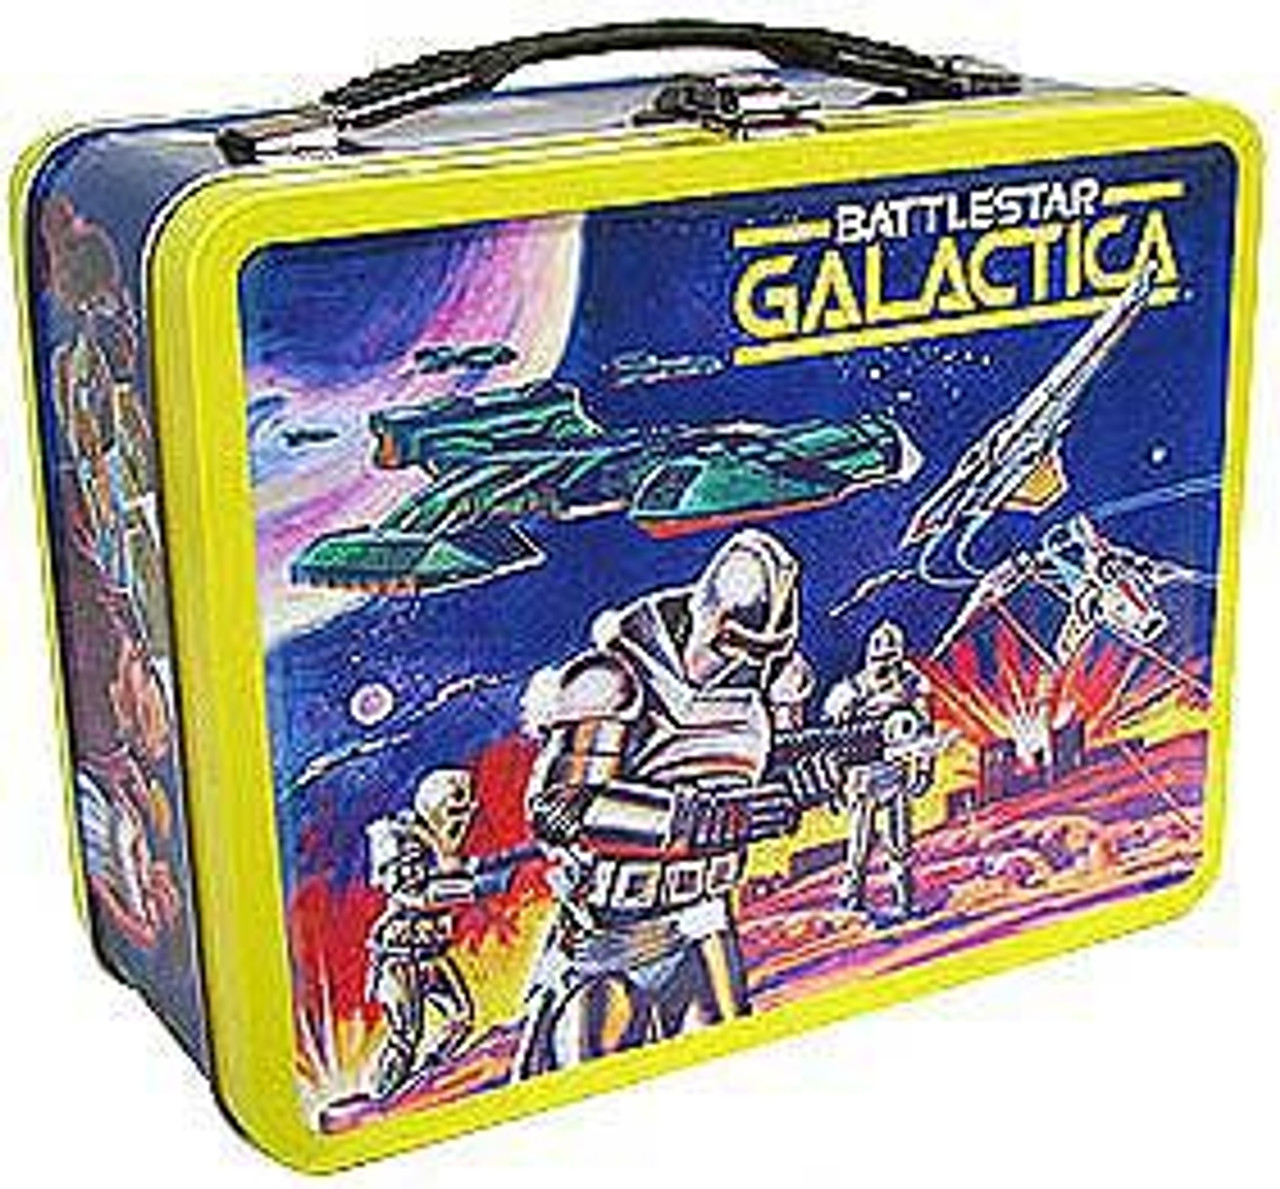 Battlestar Galactica Tin Tote Gift Set Exclusive Figure Set